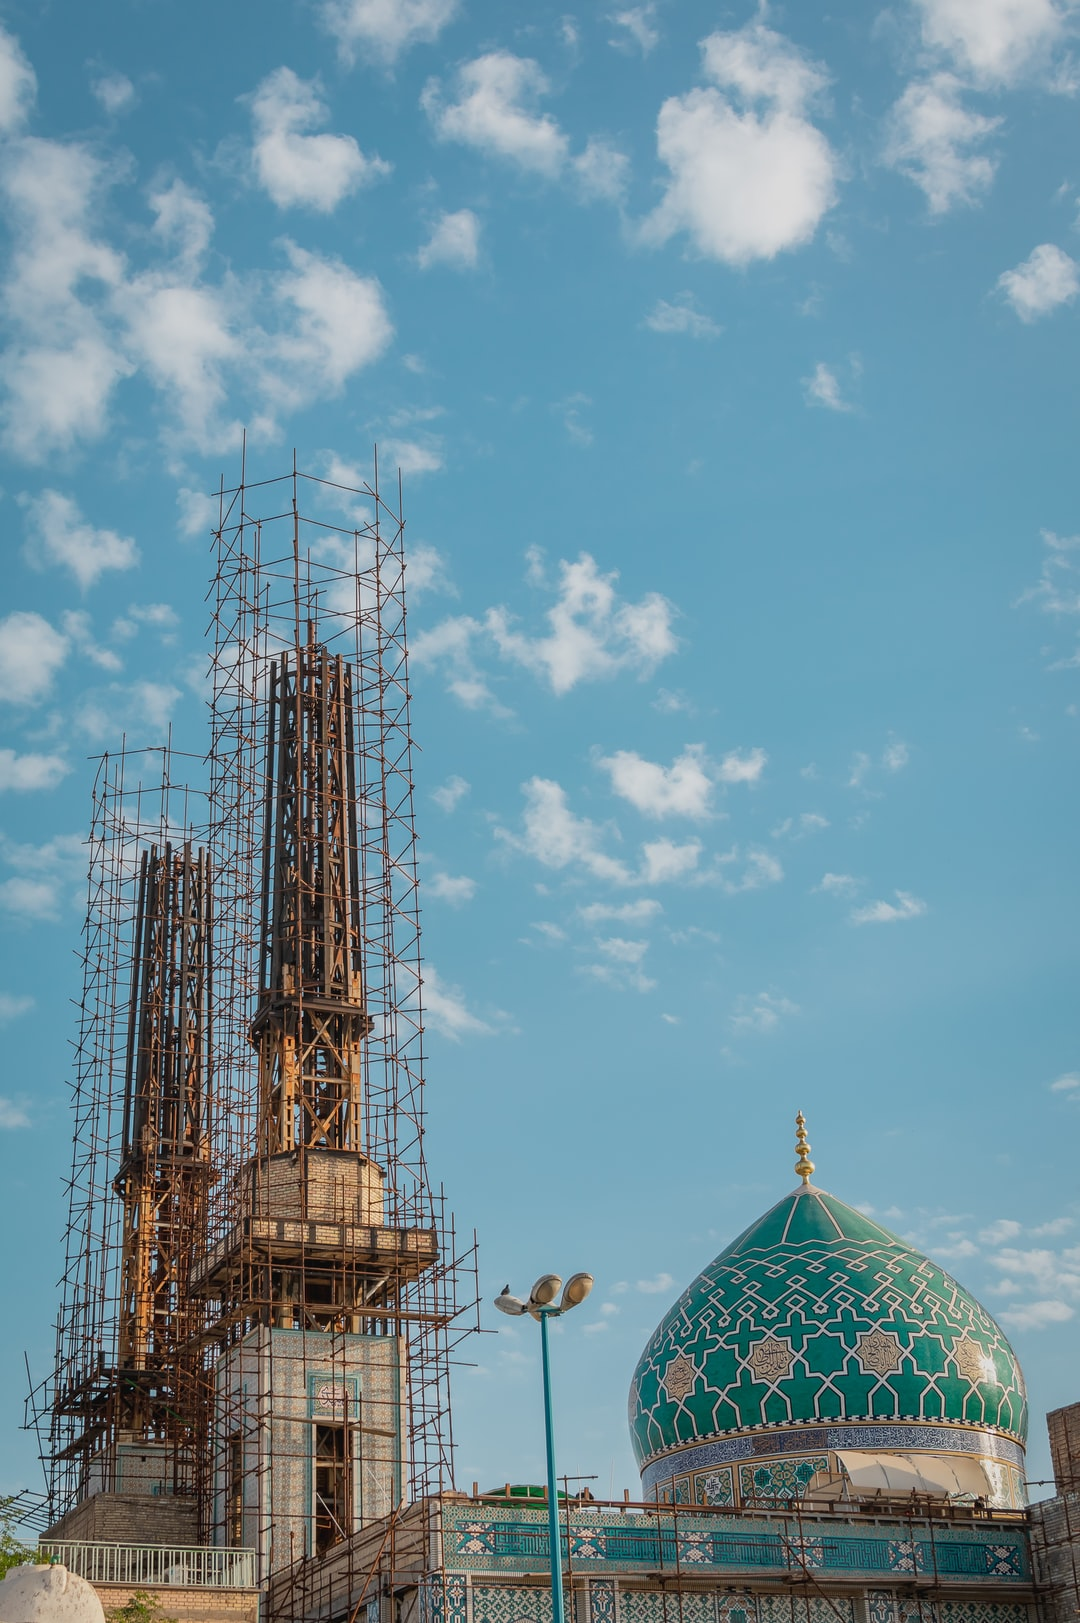 The shrine of Ali Ibn Mahziar. The dome has turquoise  tile work which is characteristic of Islamic architecture and the minarets are being being repaired.